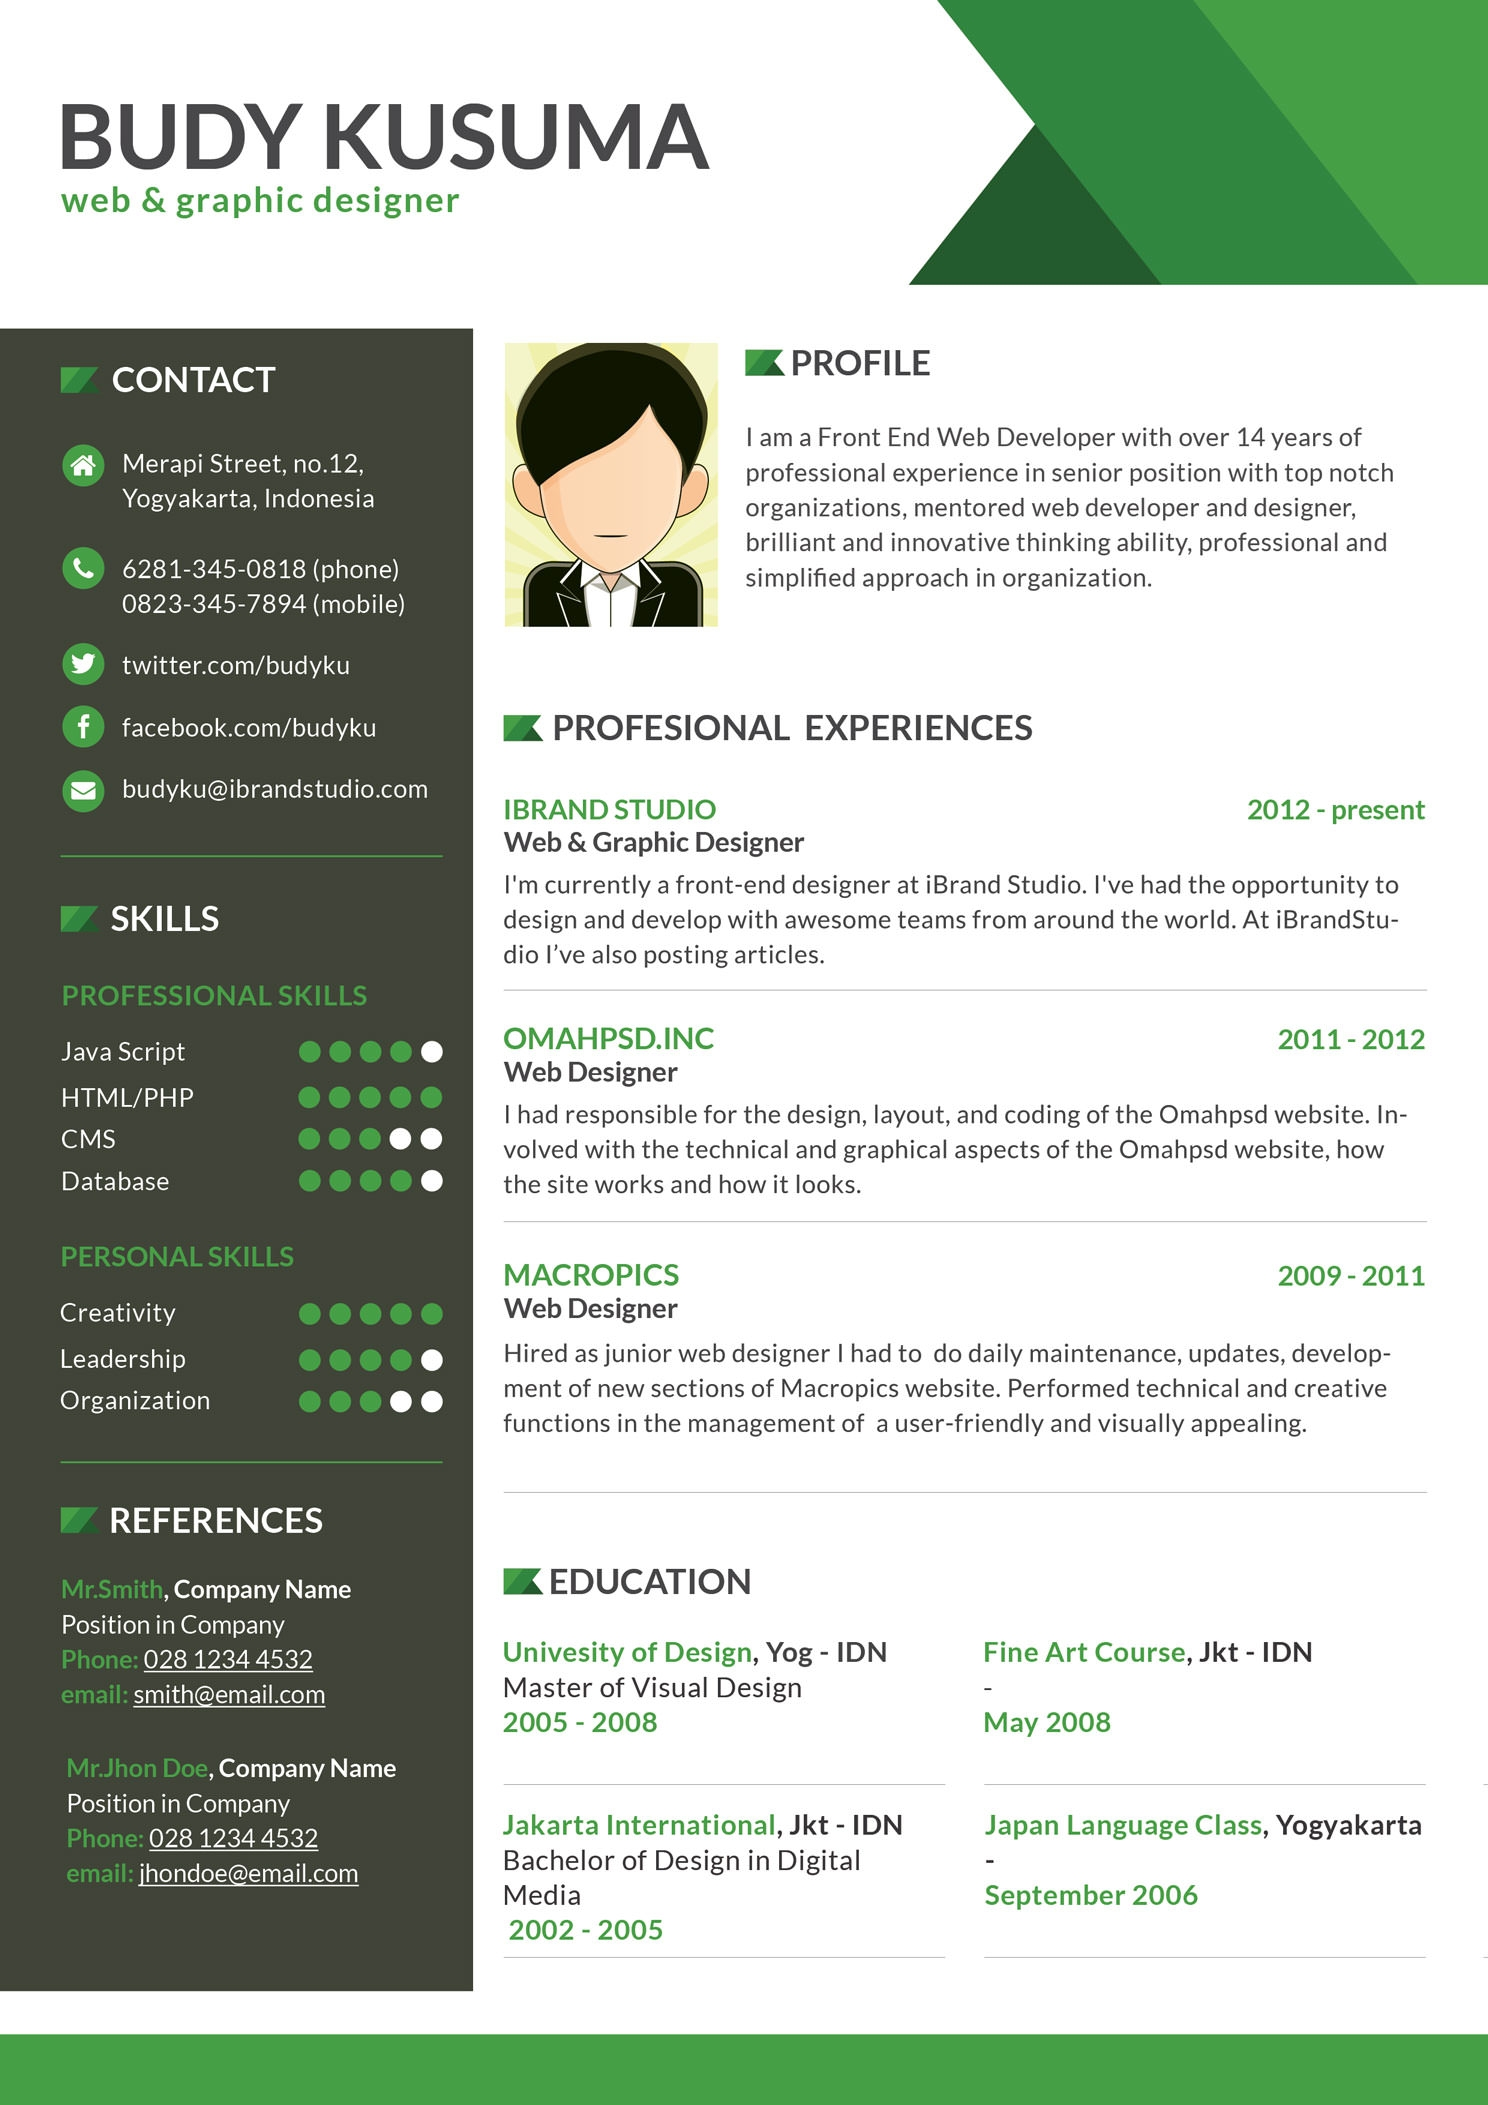 Resume Free Download Resume Design Templates 40 resume template designs freecreatives flasher green download button 171211112111121